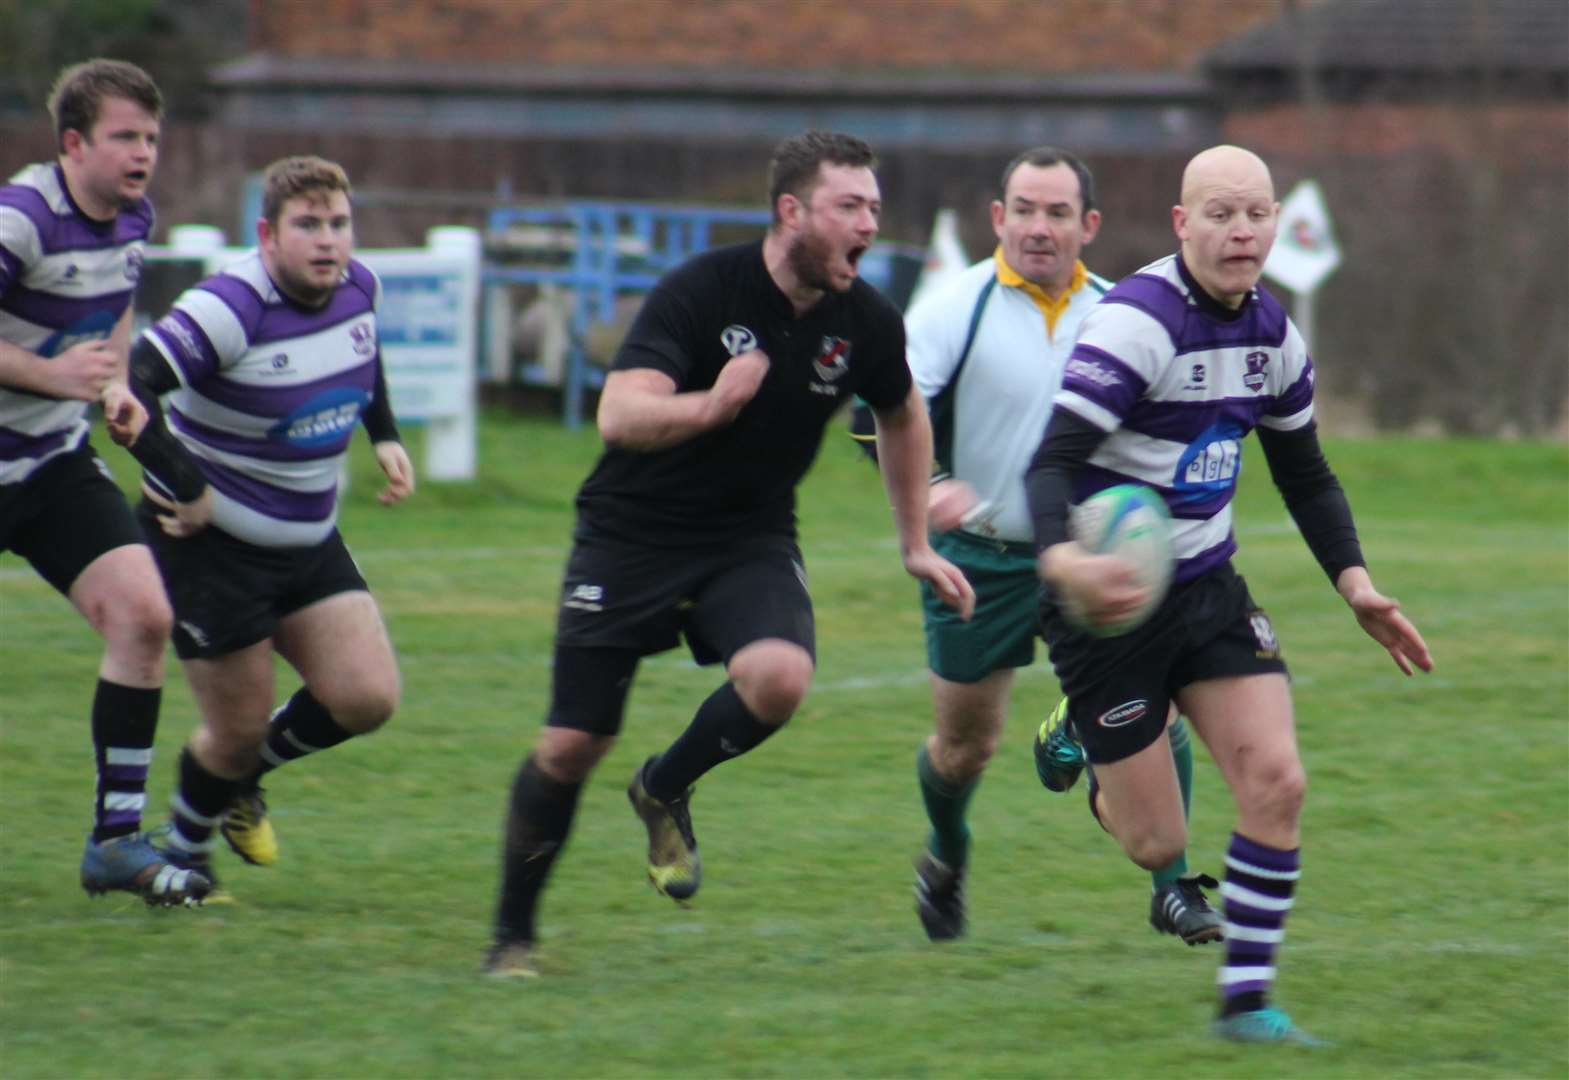 RUGBY UNION: In-form Stamford secure seventh successive bonus point victory